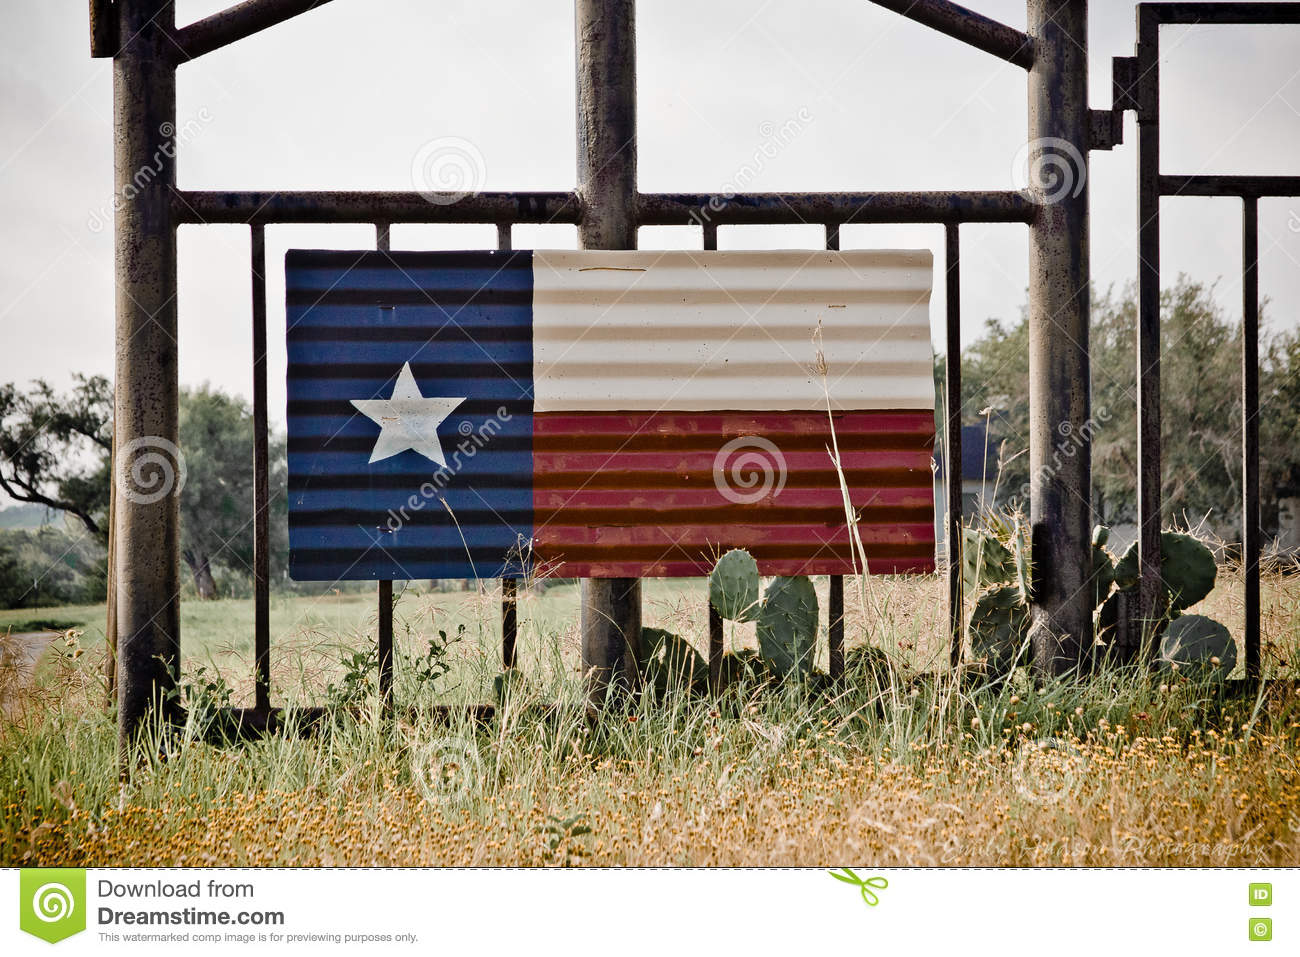 Texas Flag Art Stock Photo Image Of Gate Entrance